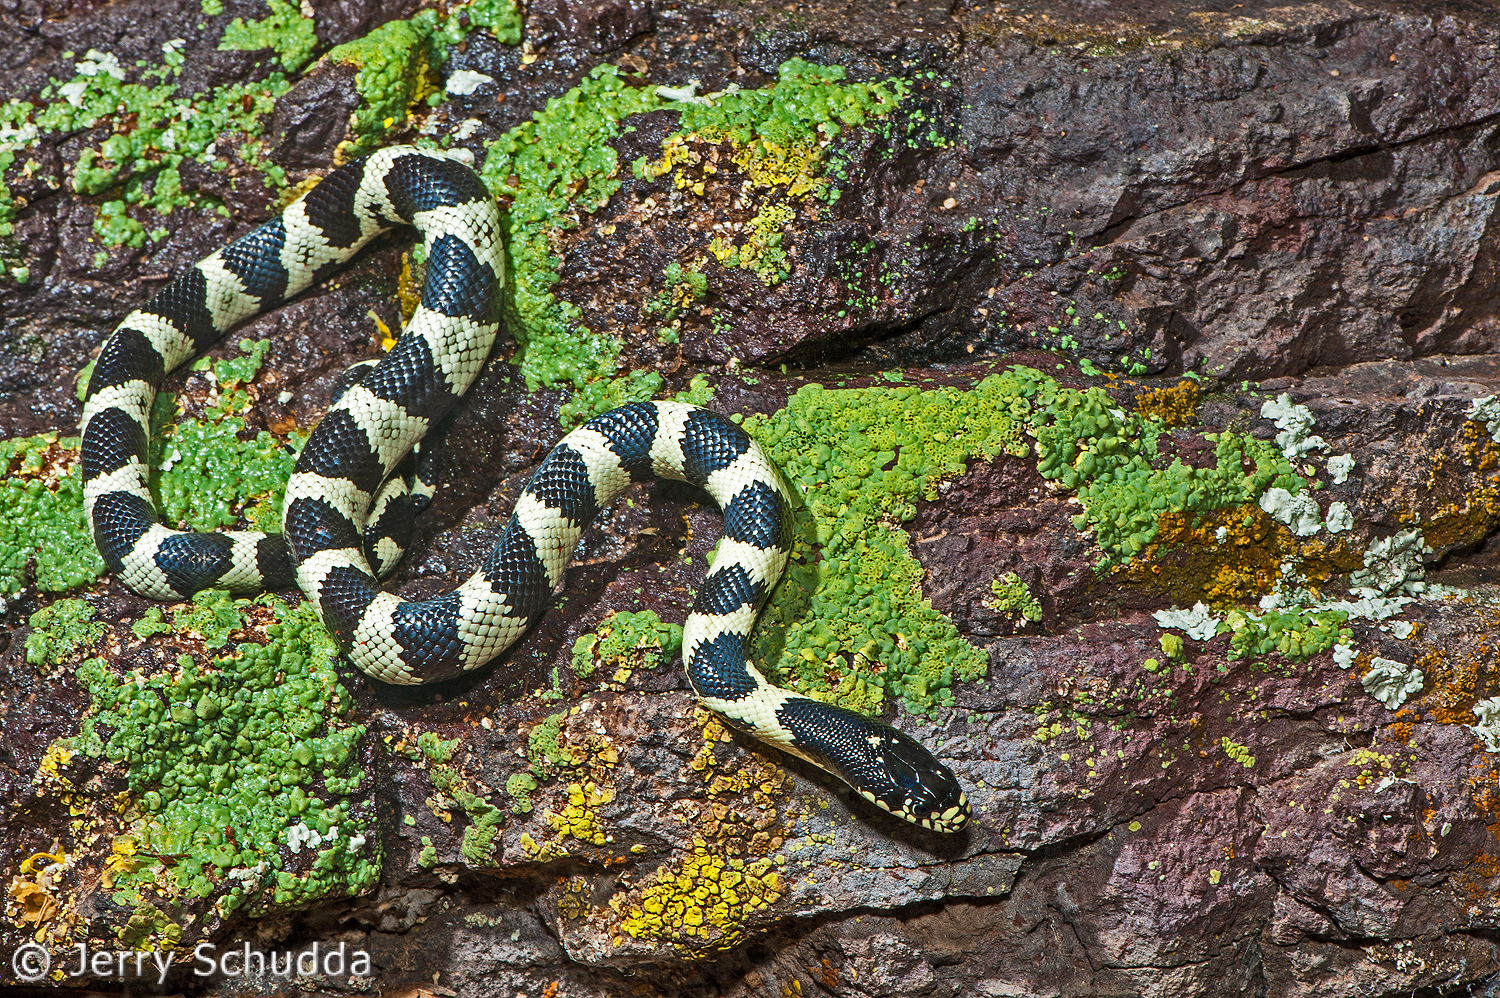 Common Kingsnake 7